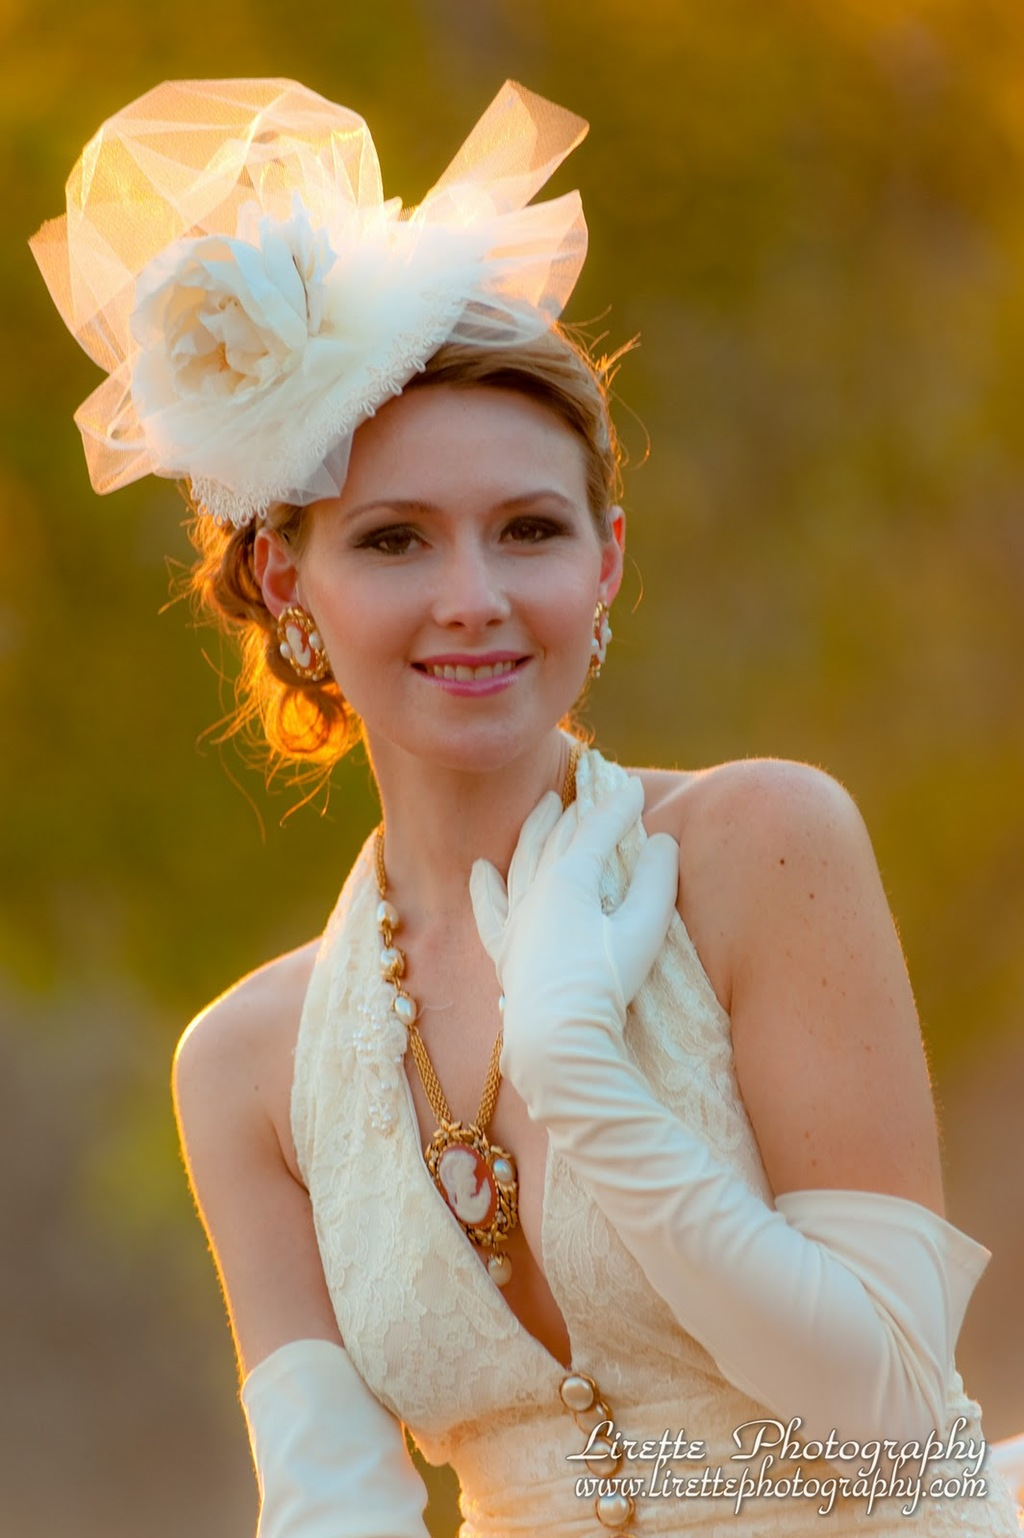 Vintage-inspired bridal look- cameo necklace, couture bridal headpiece